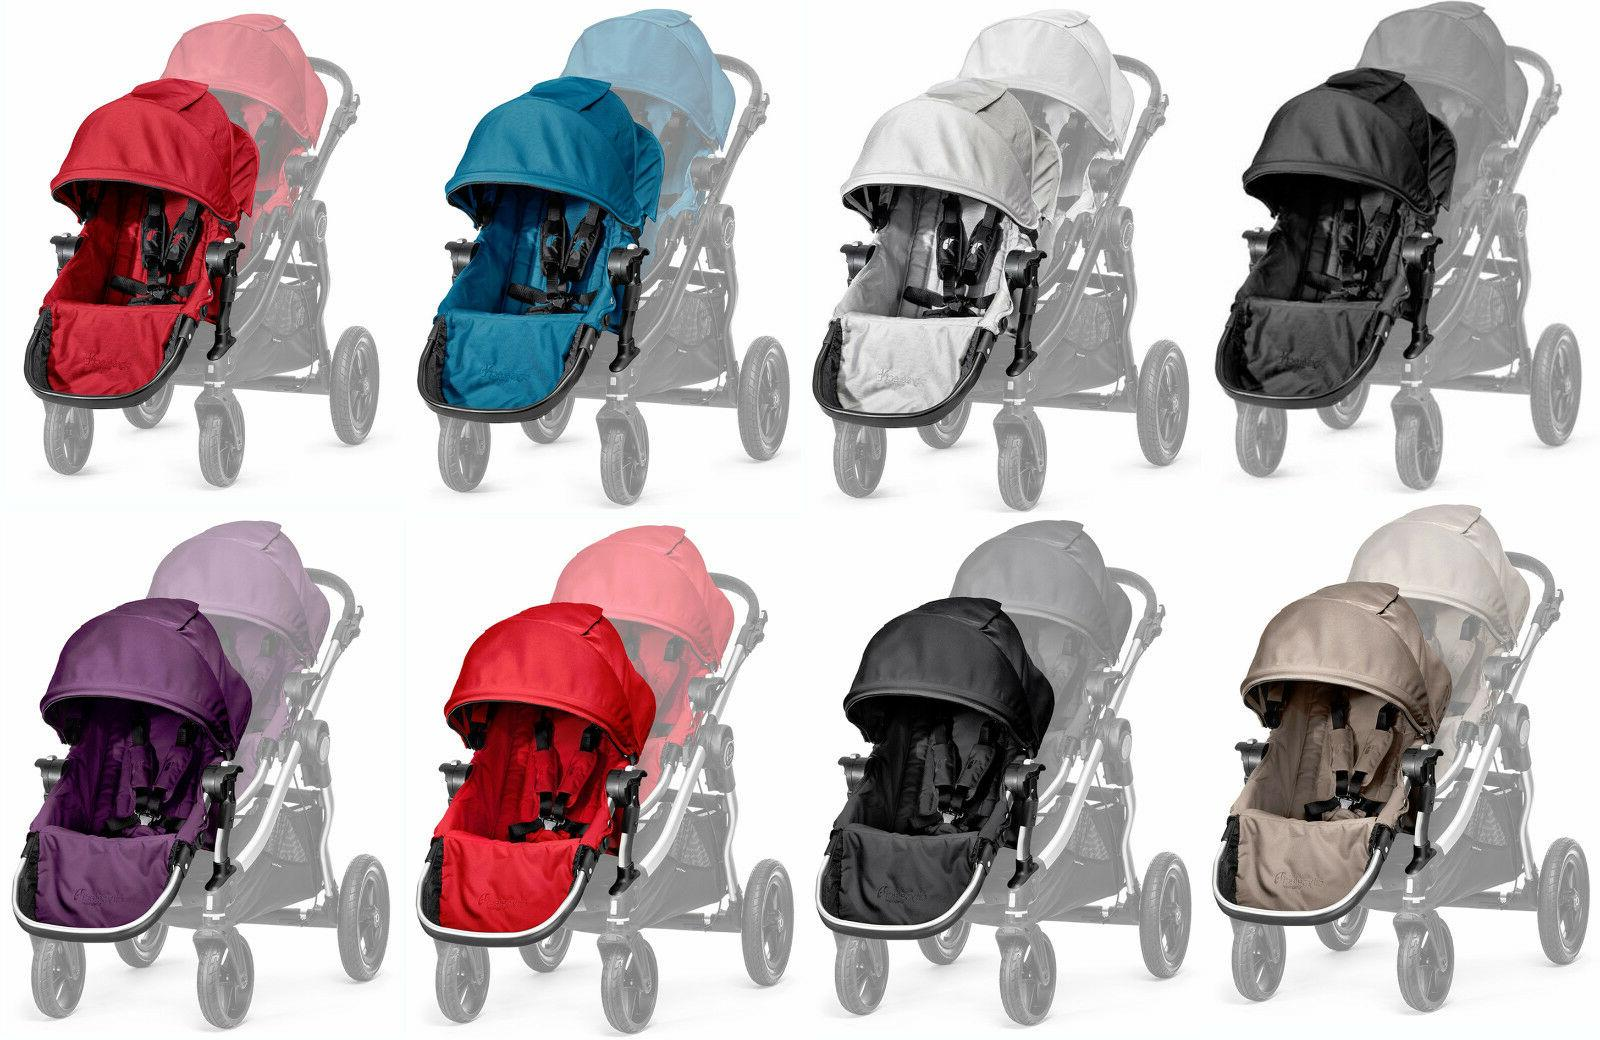 second seat attachment for city select stroller